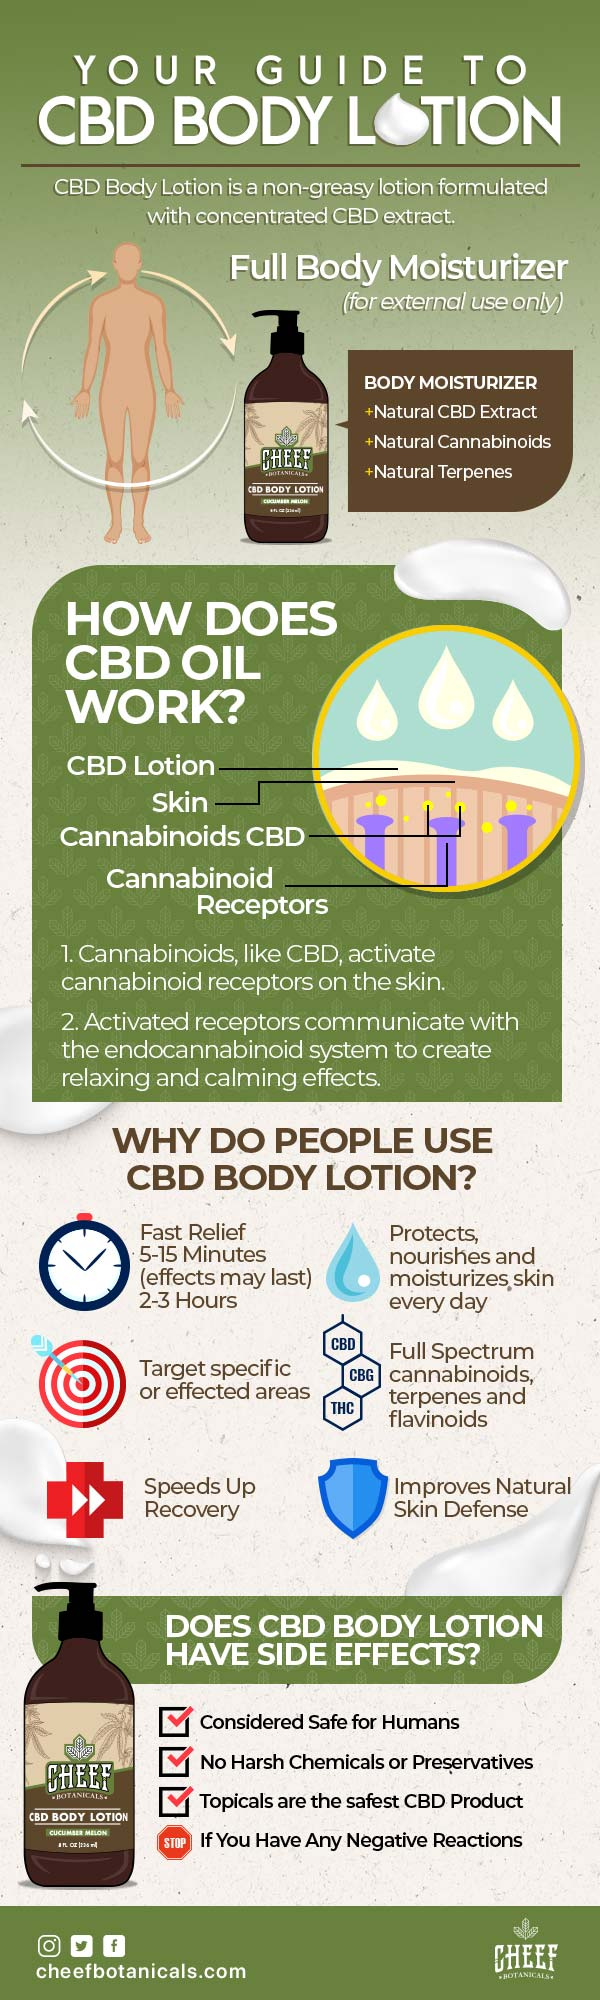 Your-Guide-to-CBD-Body-Lotion-infographic-plaza